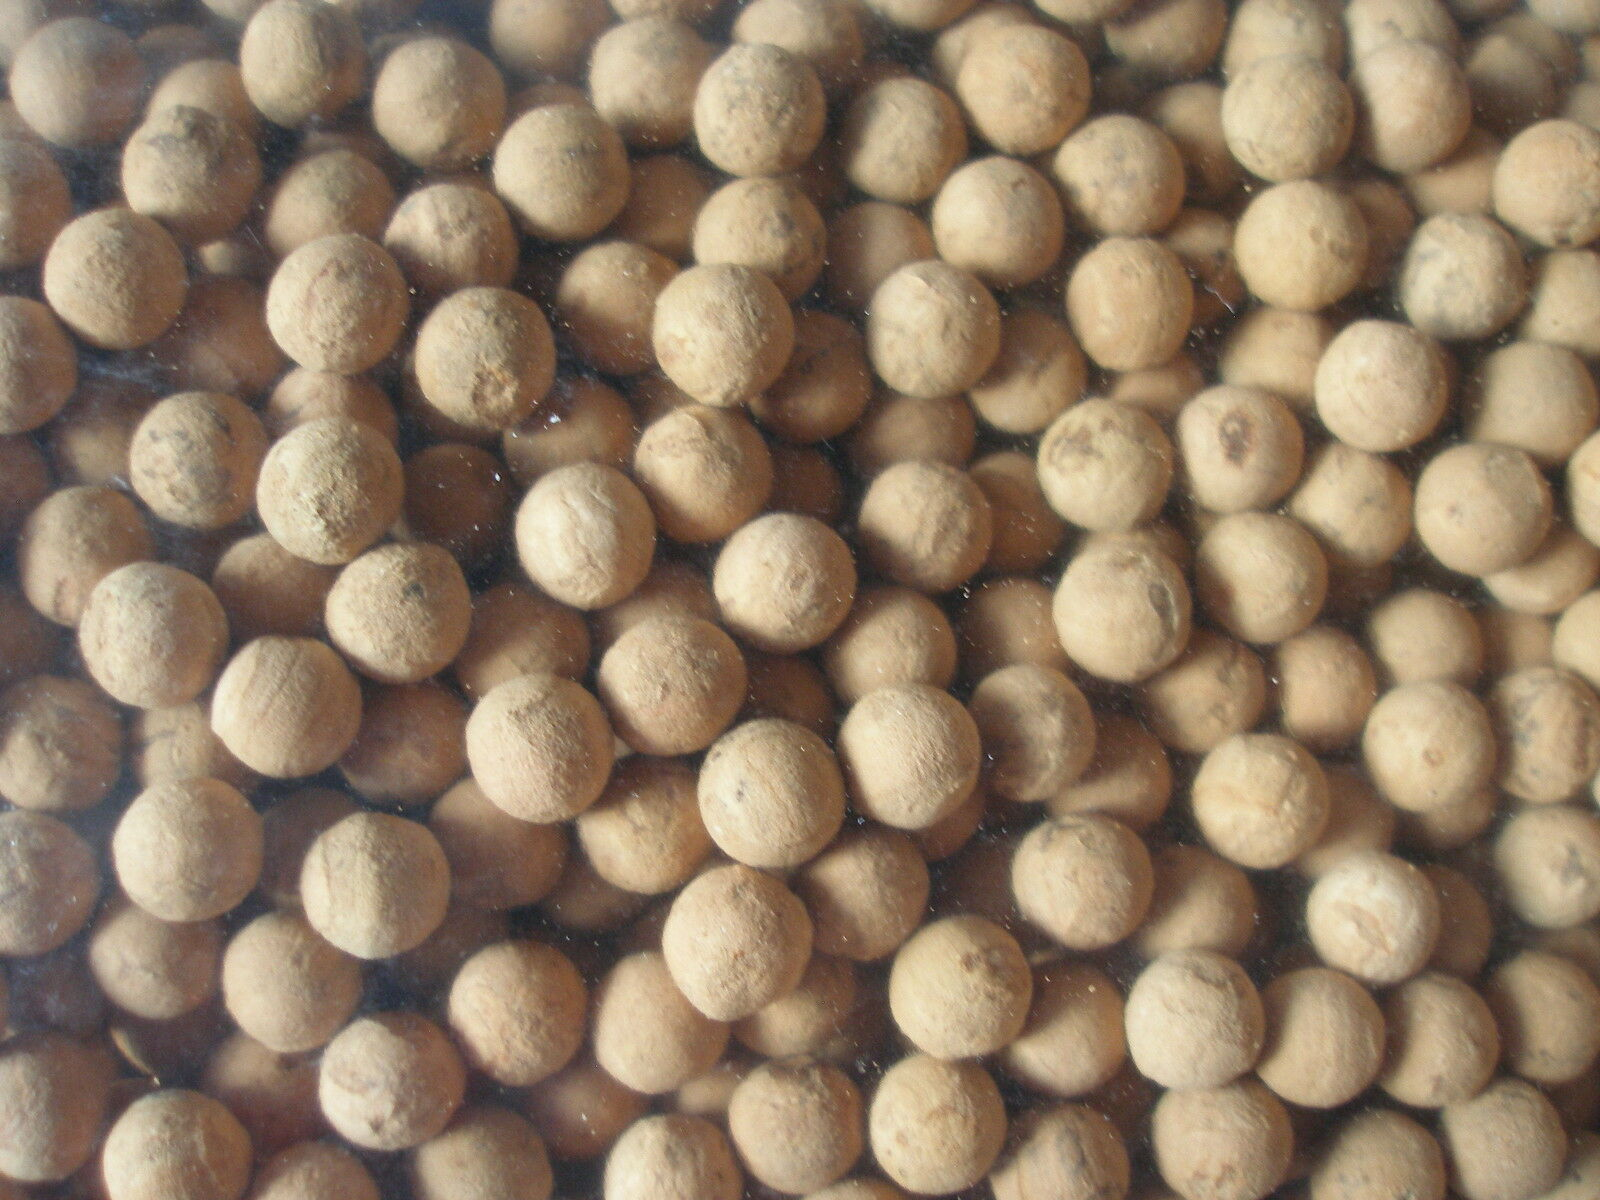 10mm solid cork ball crafts fishing picclick uk for Cork balls for crafts